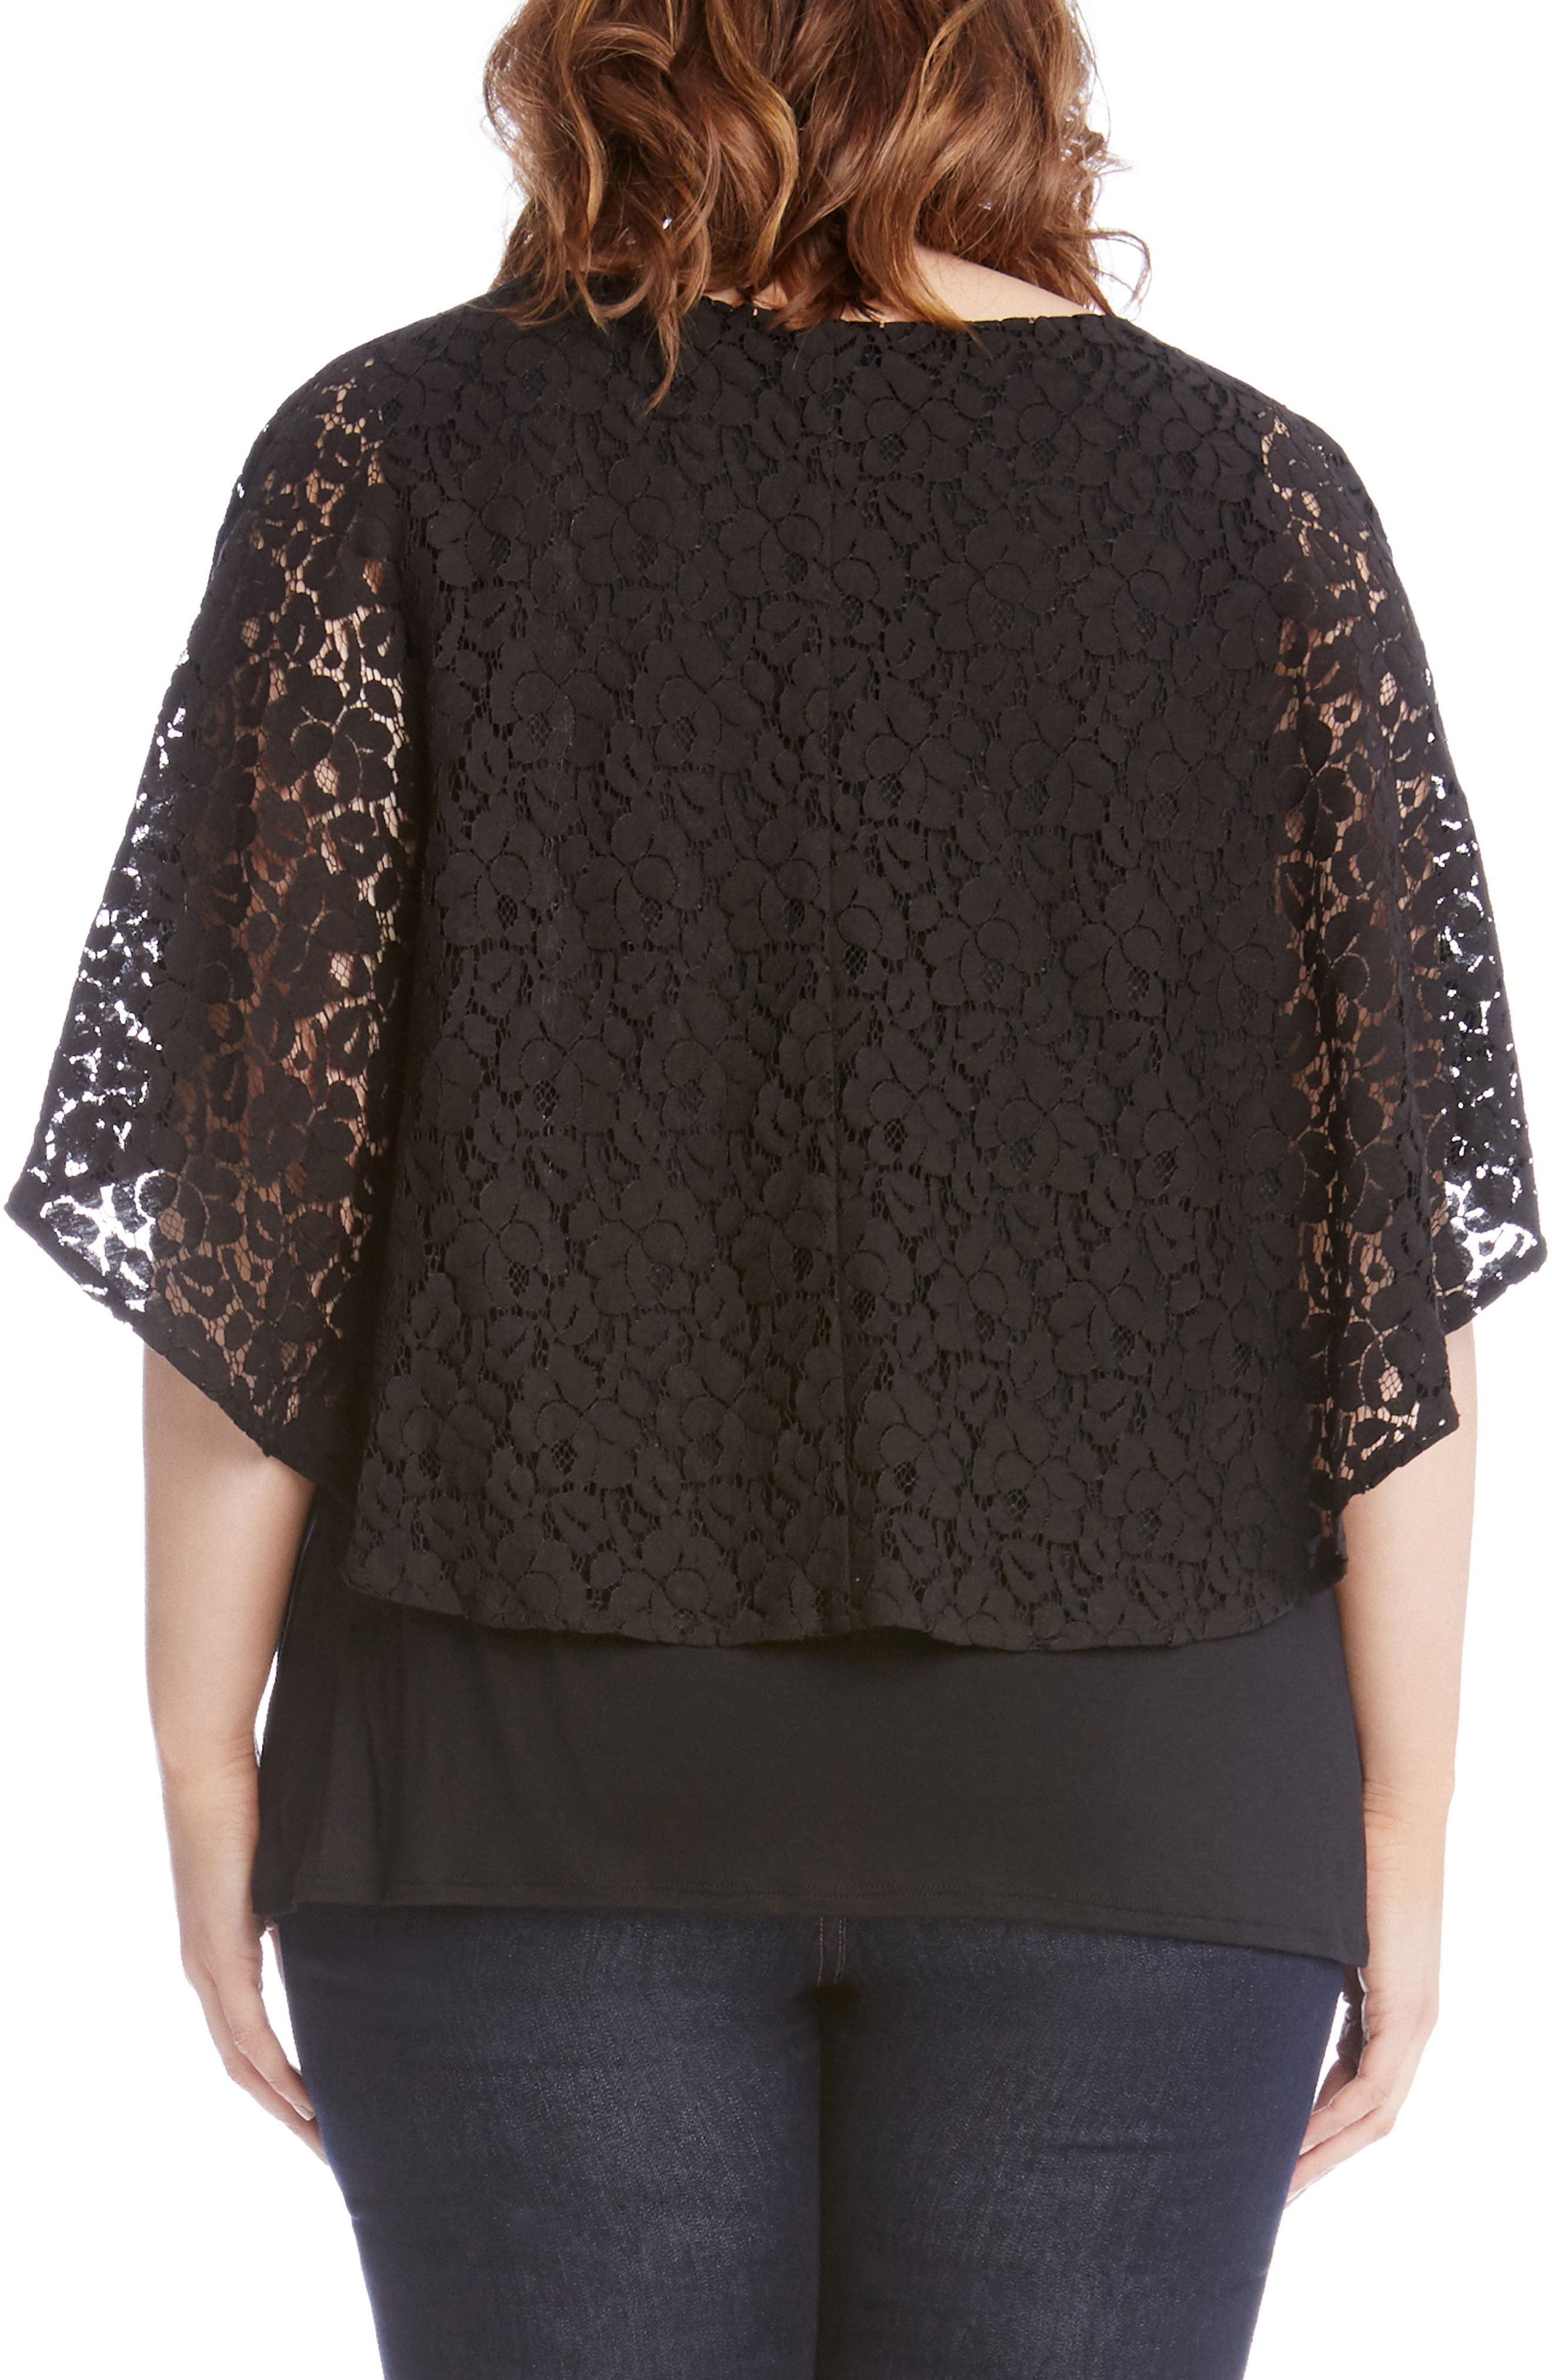 Lace Overlay Top,                             Alternate thumbnail 3, color,                             001